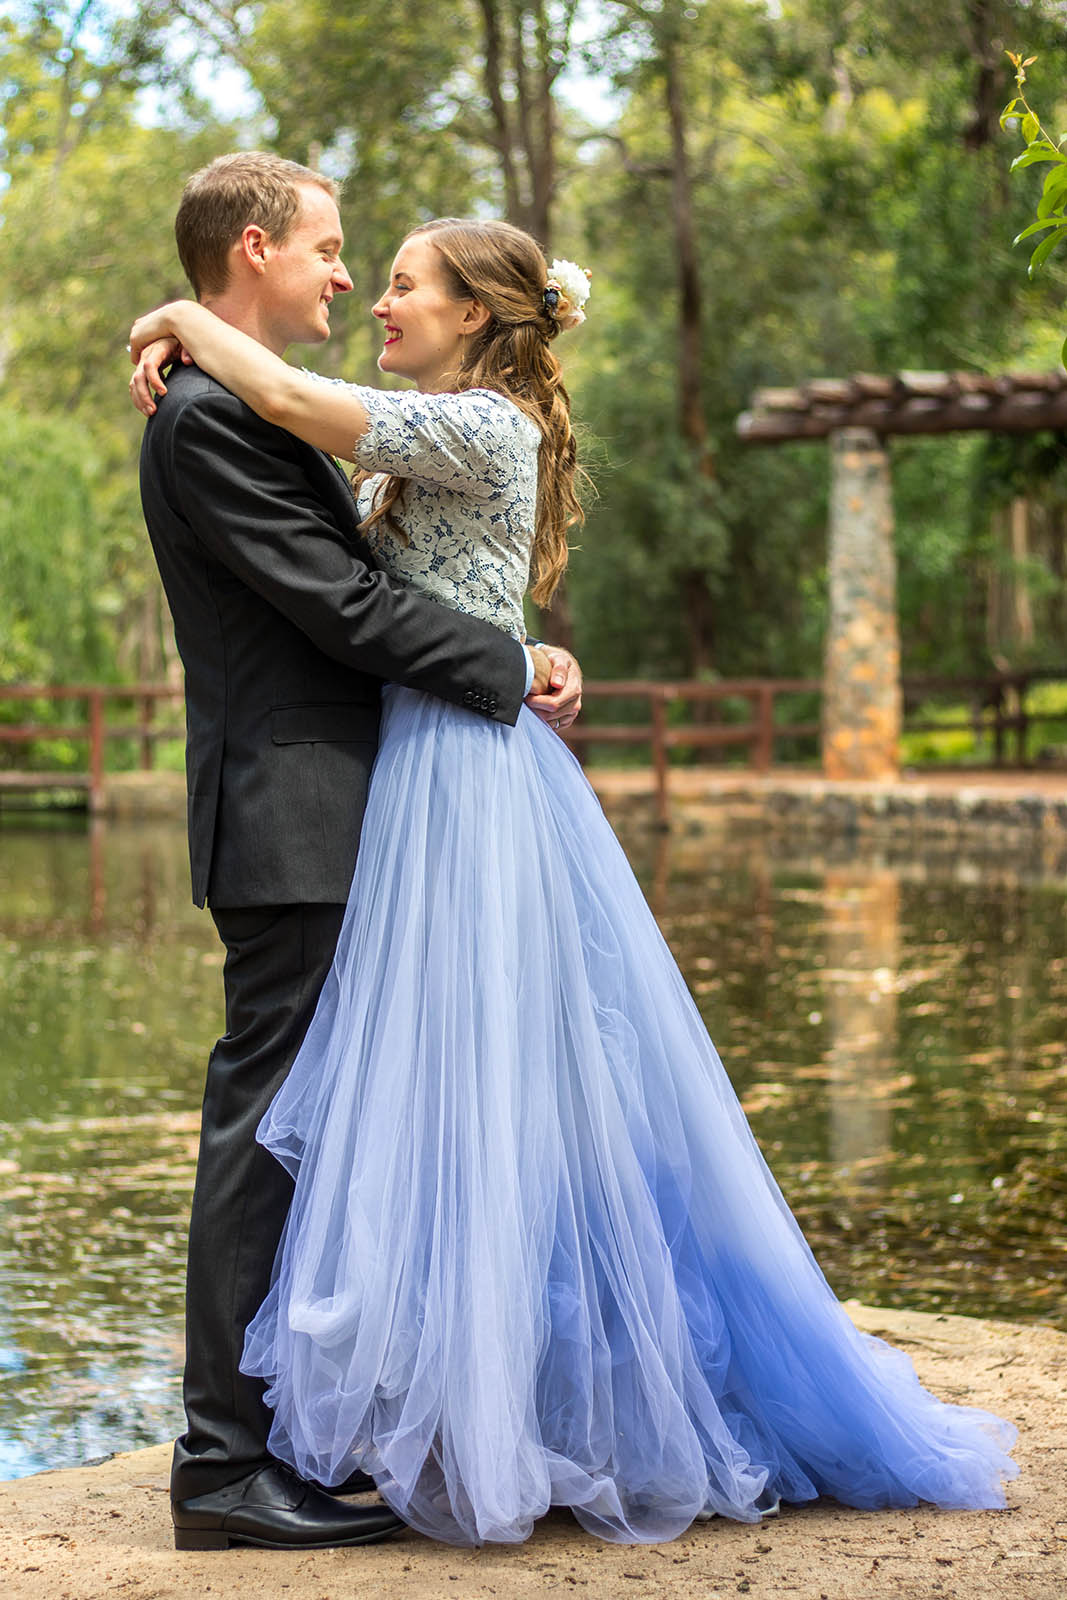 Bride and groom embracing each other poolside at Araluen Botanic Park